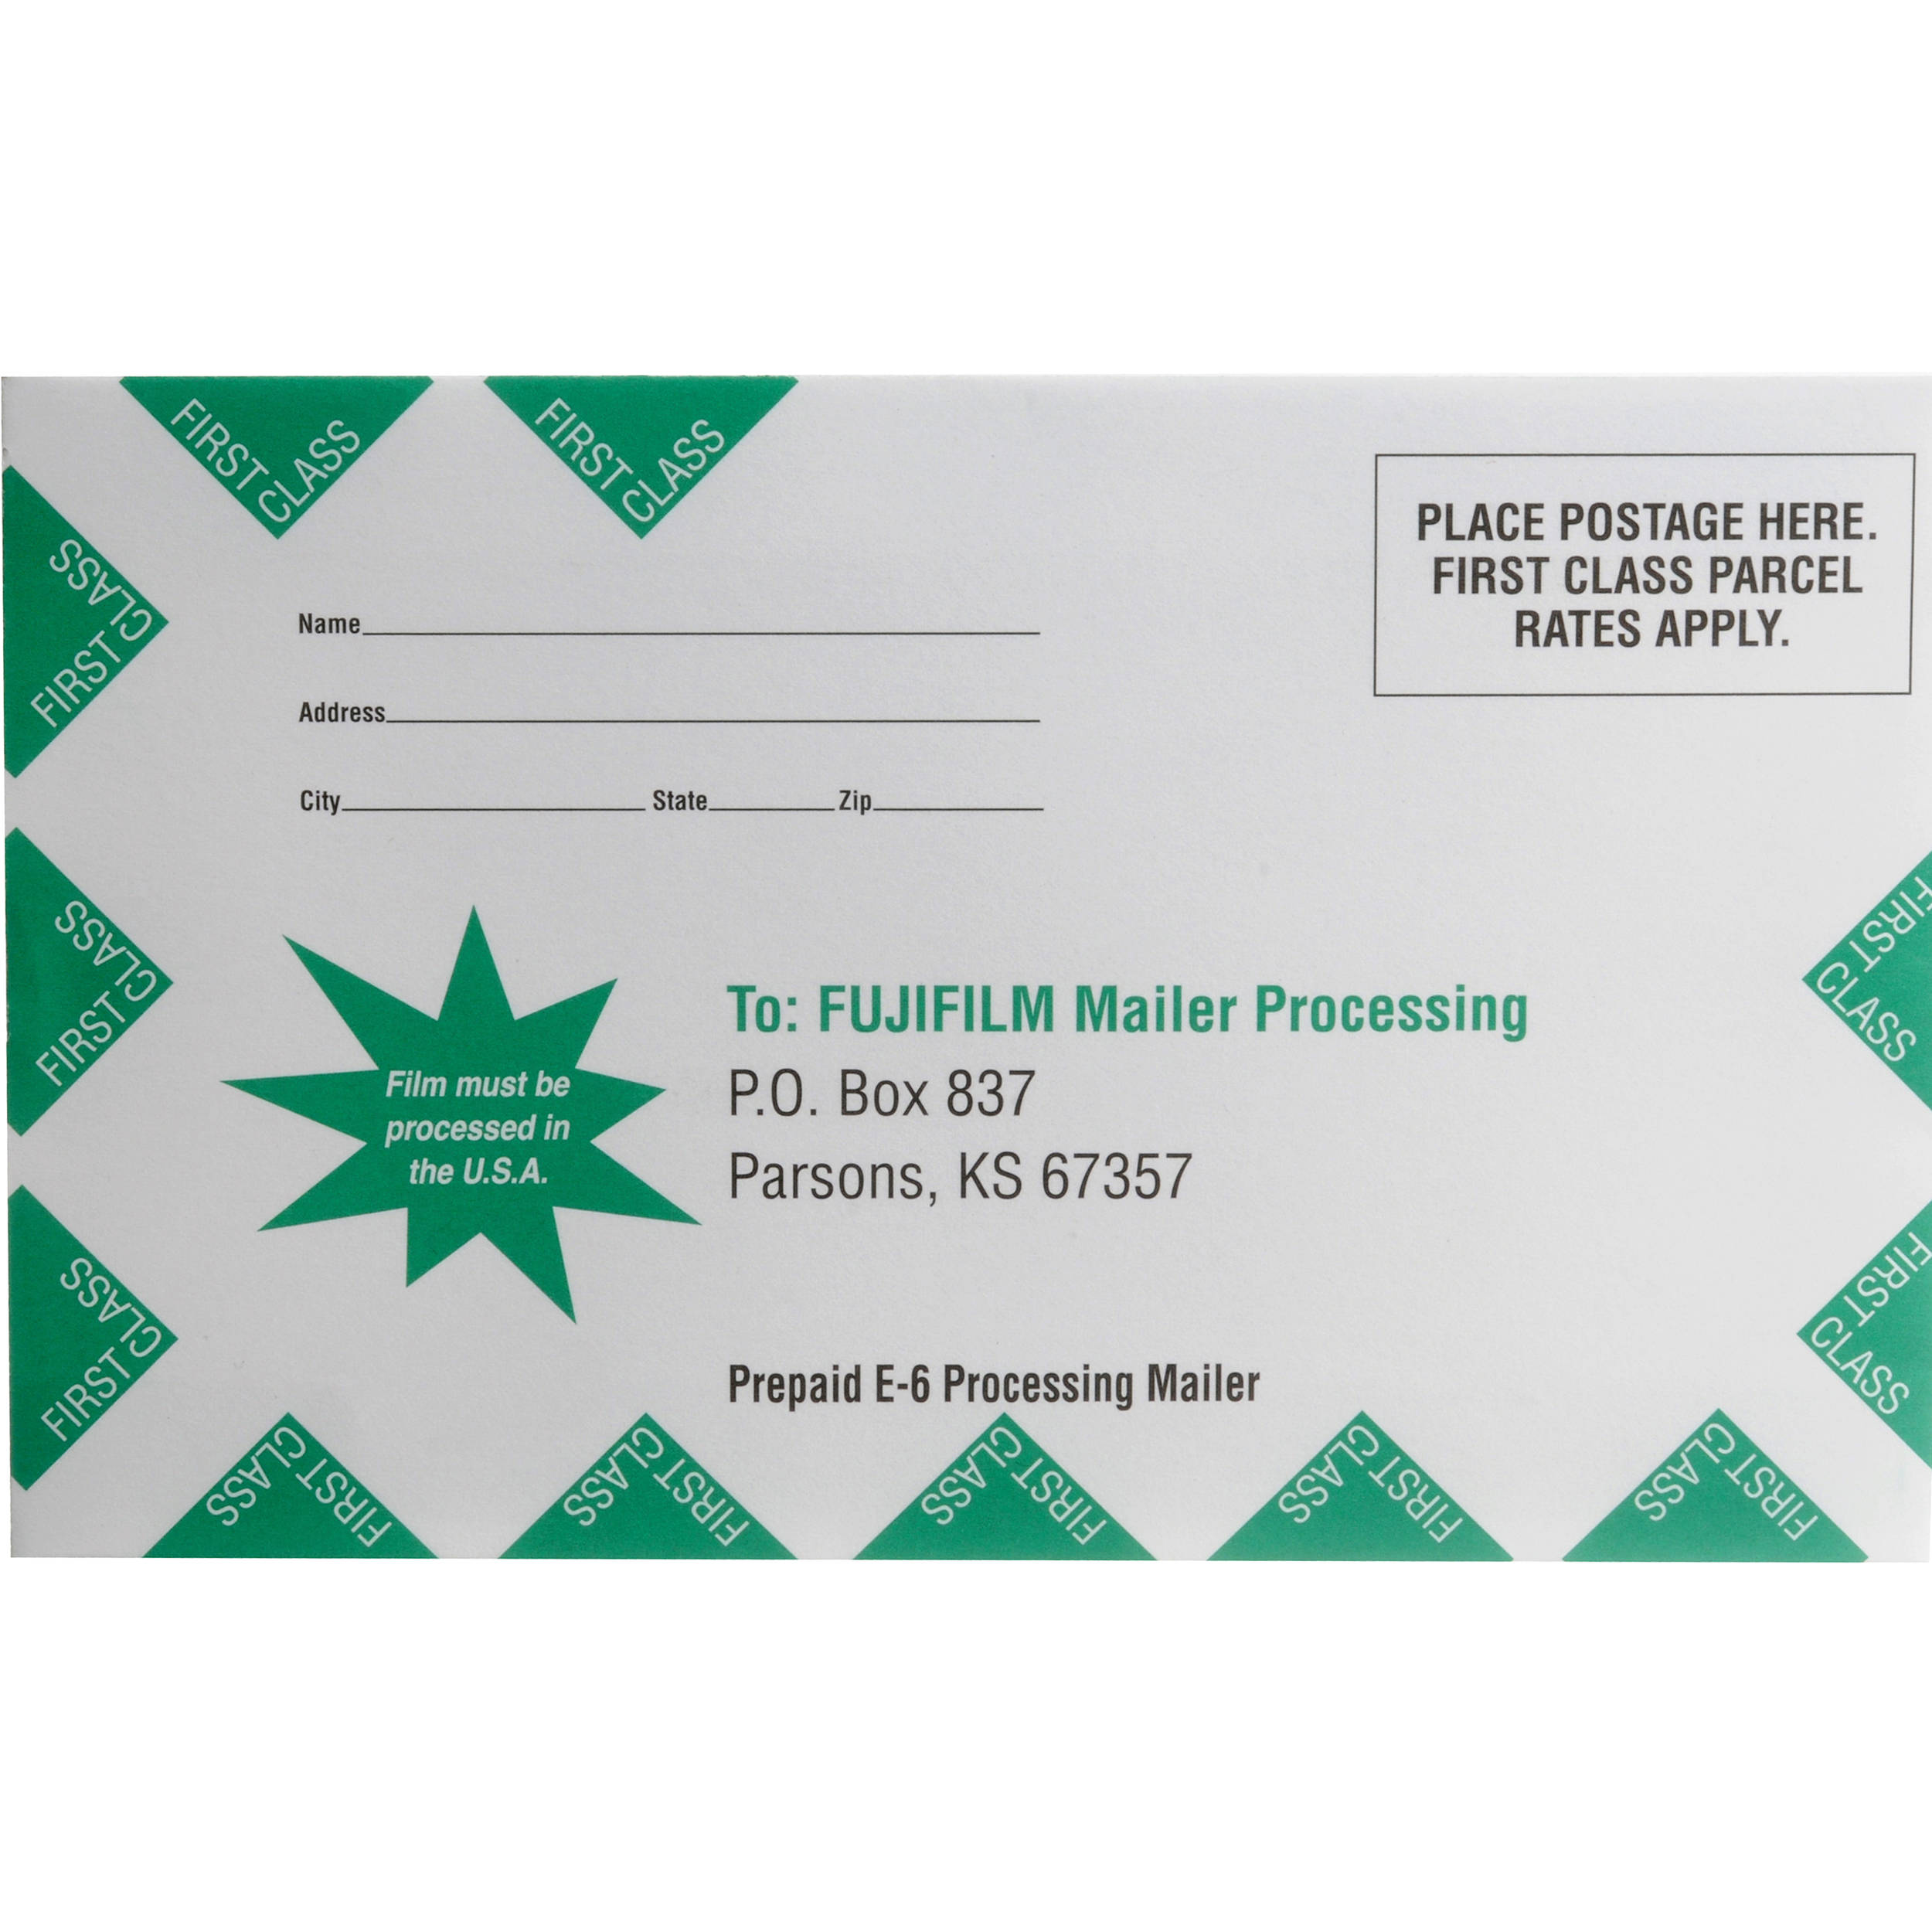 Fujifilm Slide Processing Mailer for One 35mm or 120 Roll of Film: www.bhphotovideo.com/c/product/18646-REG/Fujifilm_Slide_Processing...